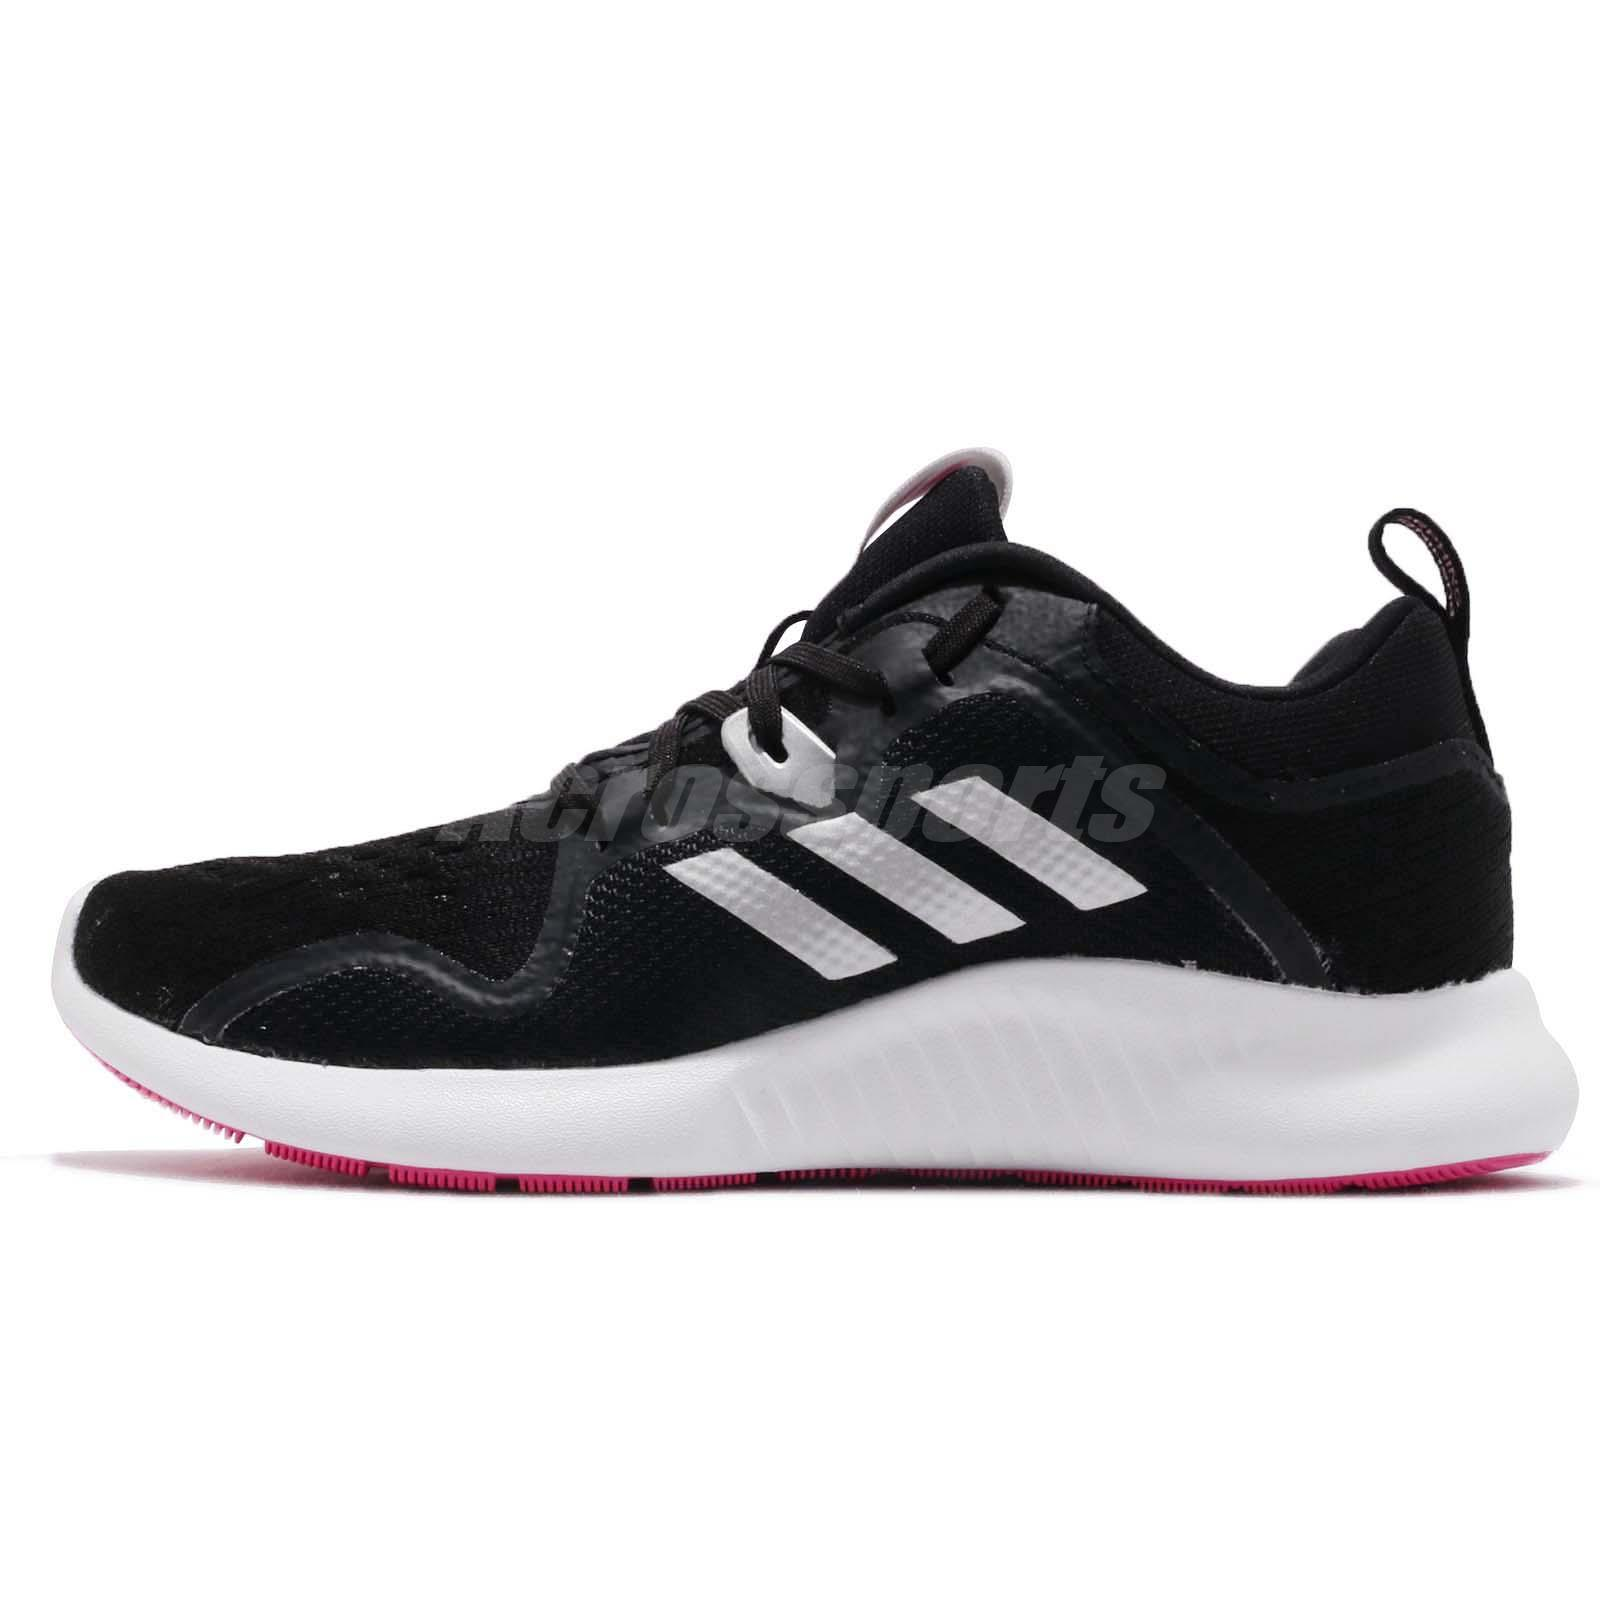 adidas EdgeBOUNCE W Black Silver Pink White Women Running Shoes Sneakers BB7563